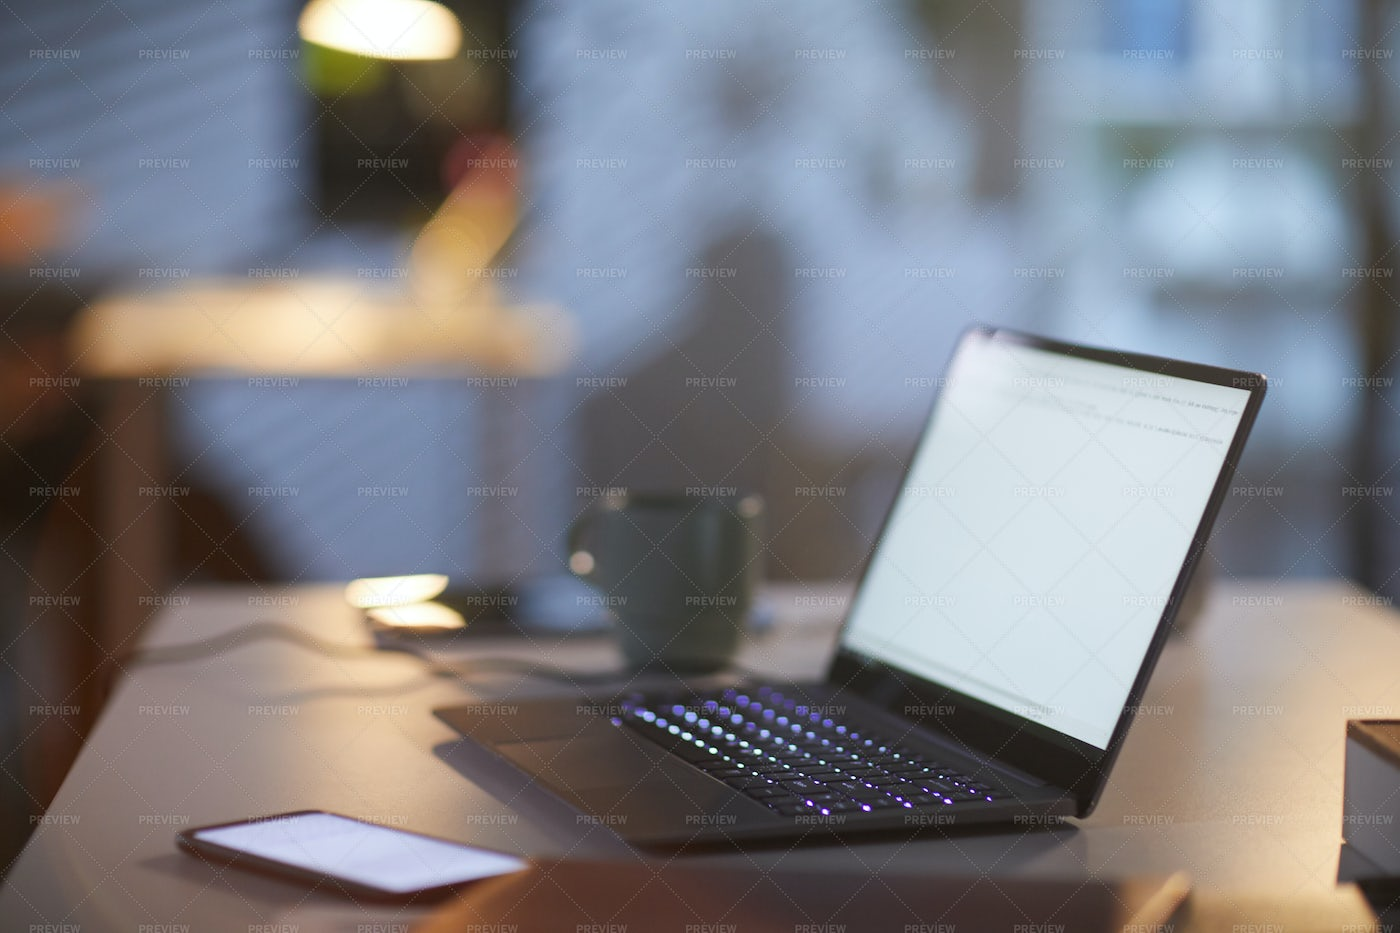 Office Workplace With Laptop: Stock Photos